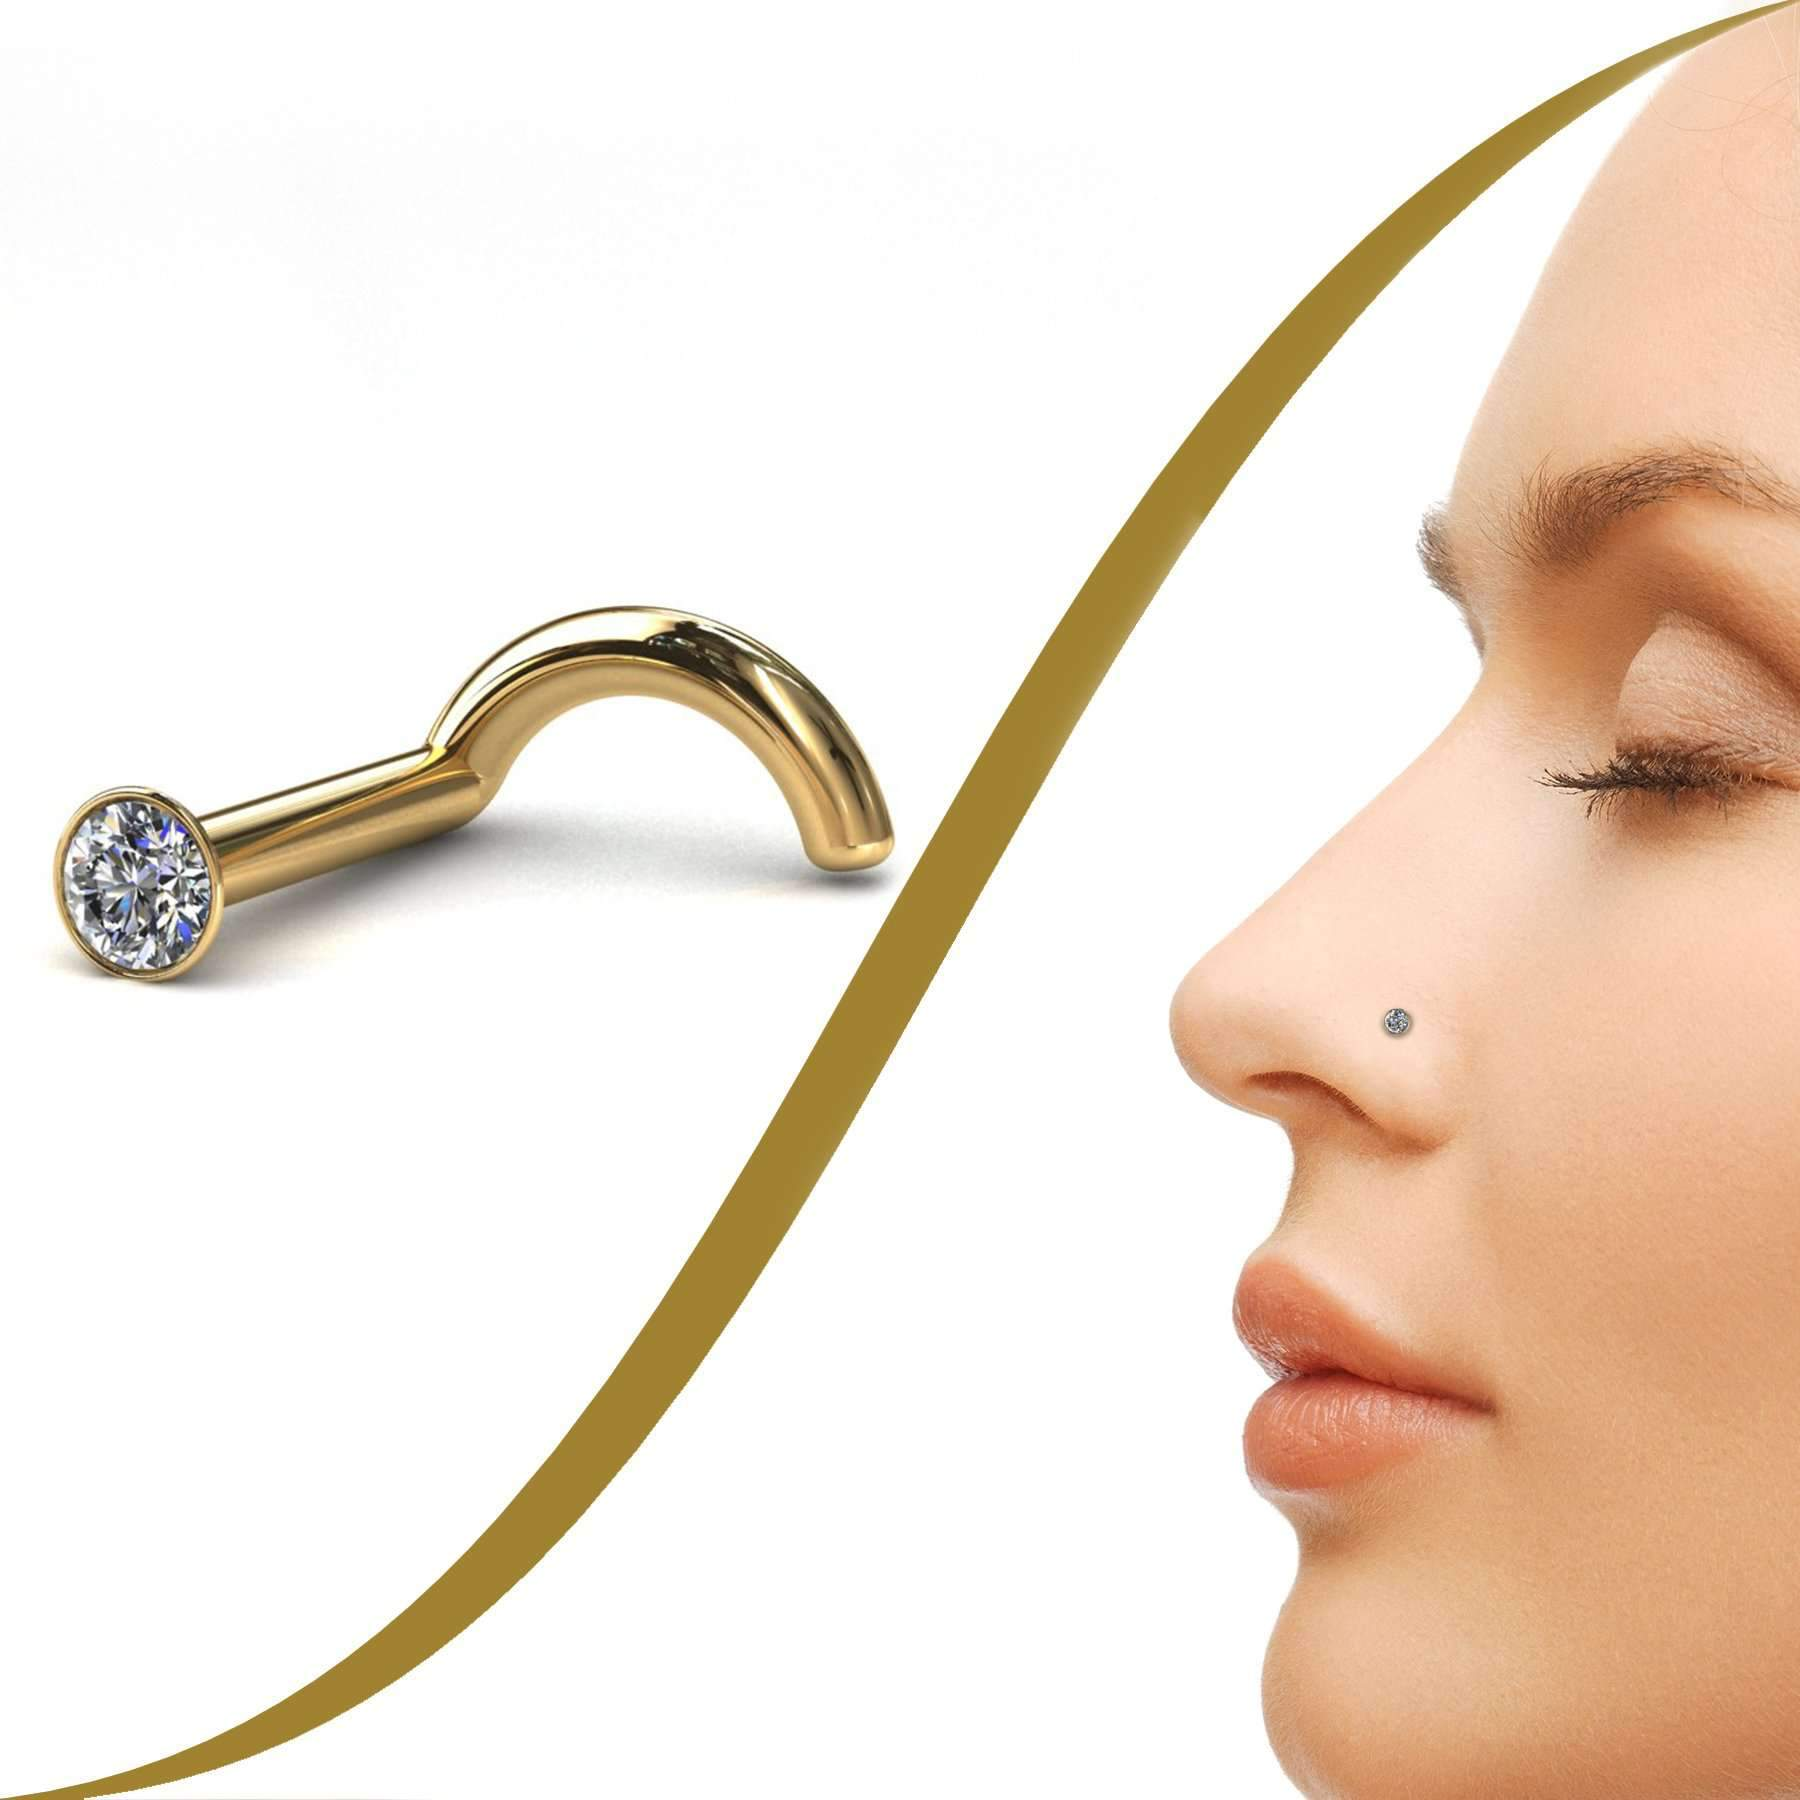 Diamond Nose Stud with Tiny 1pt Diamond (1.4mm) - BMG Body Jewellery